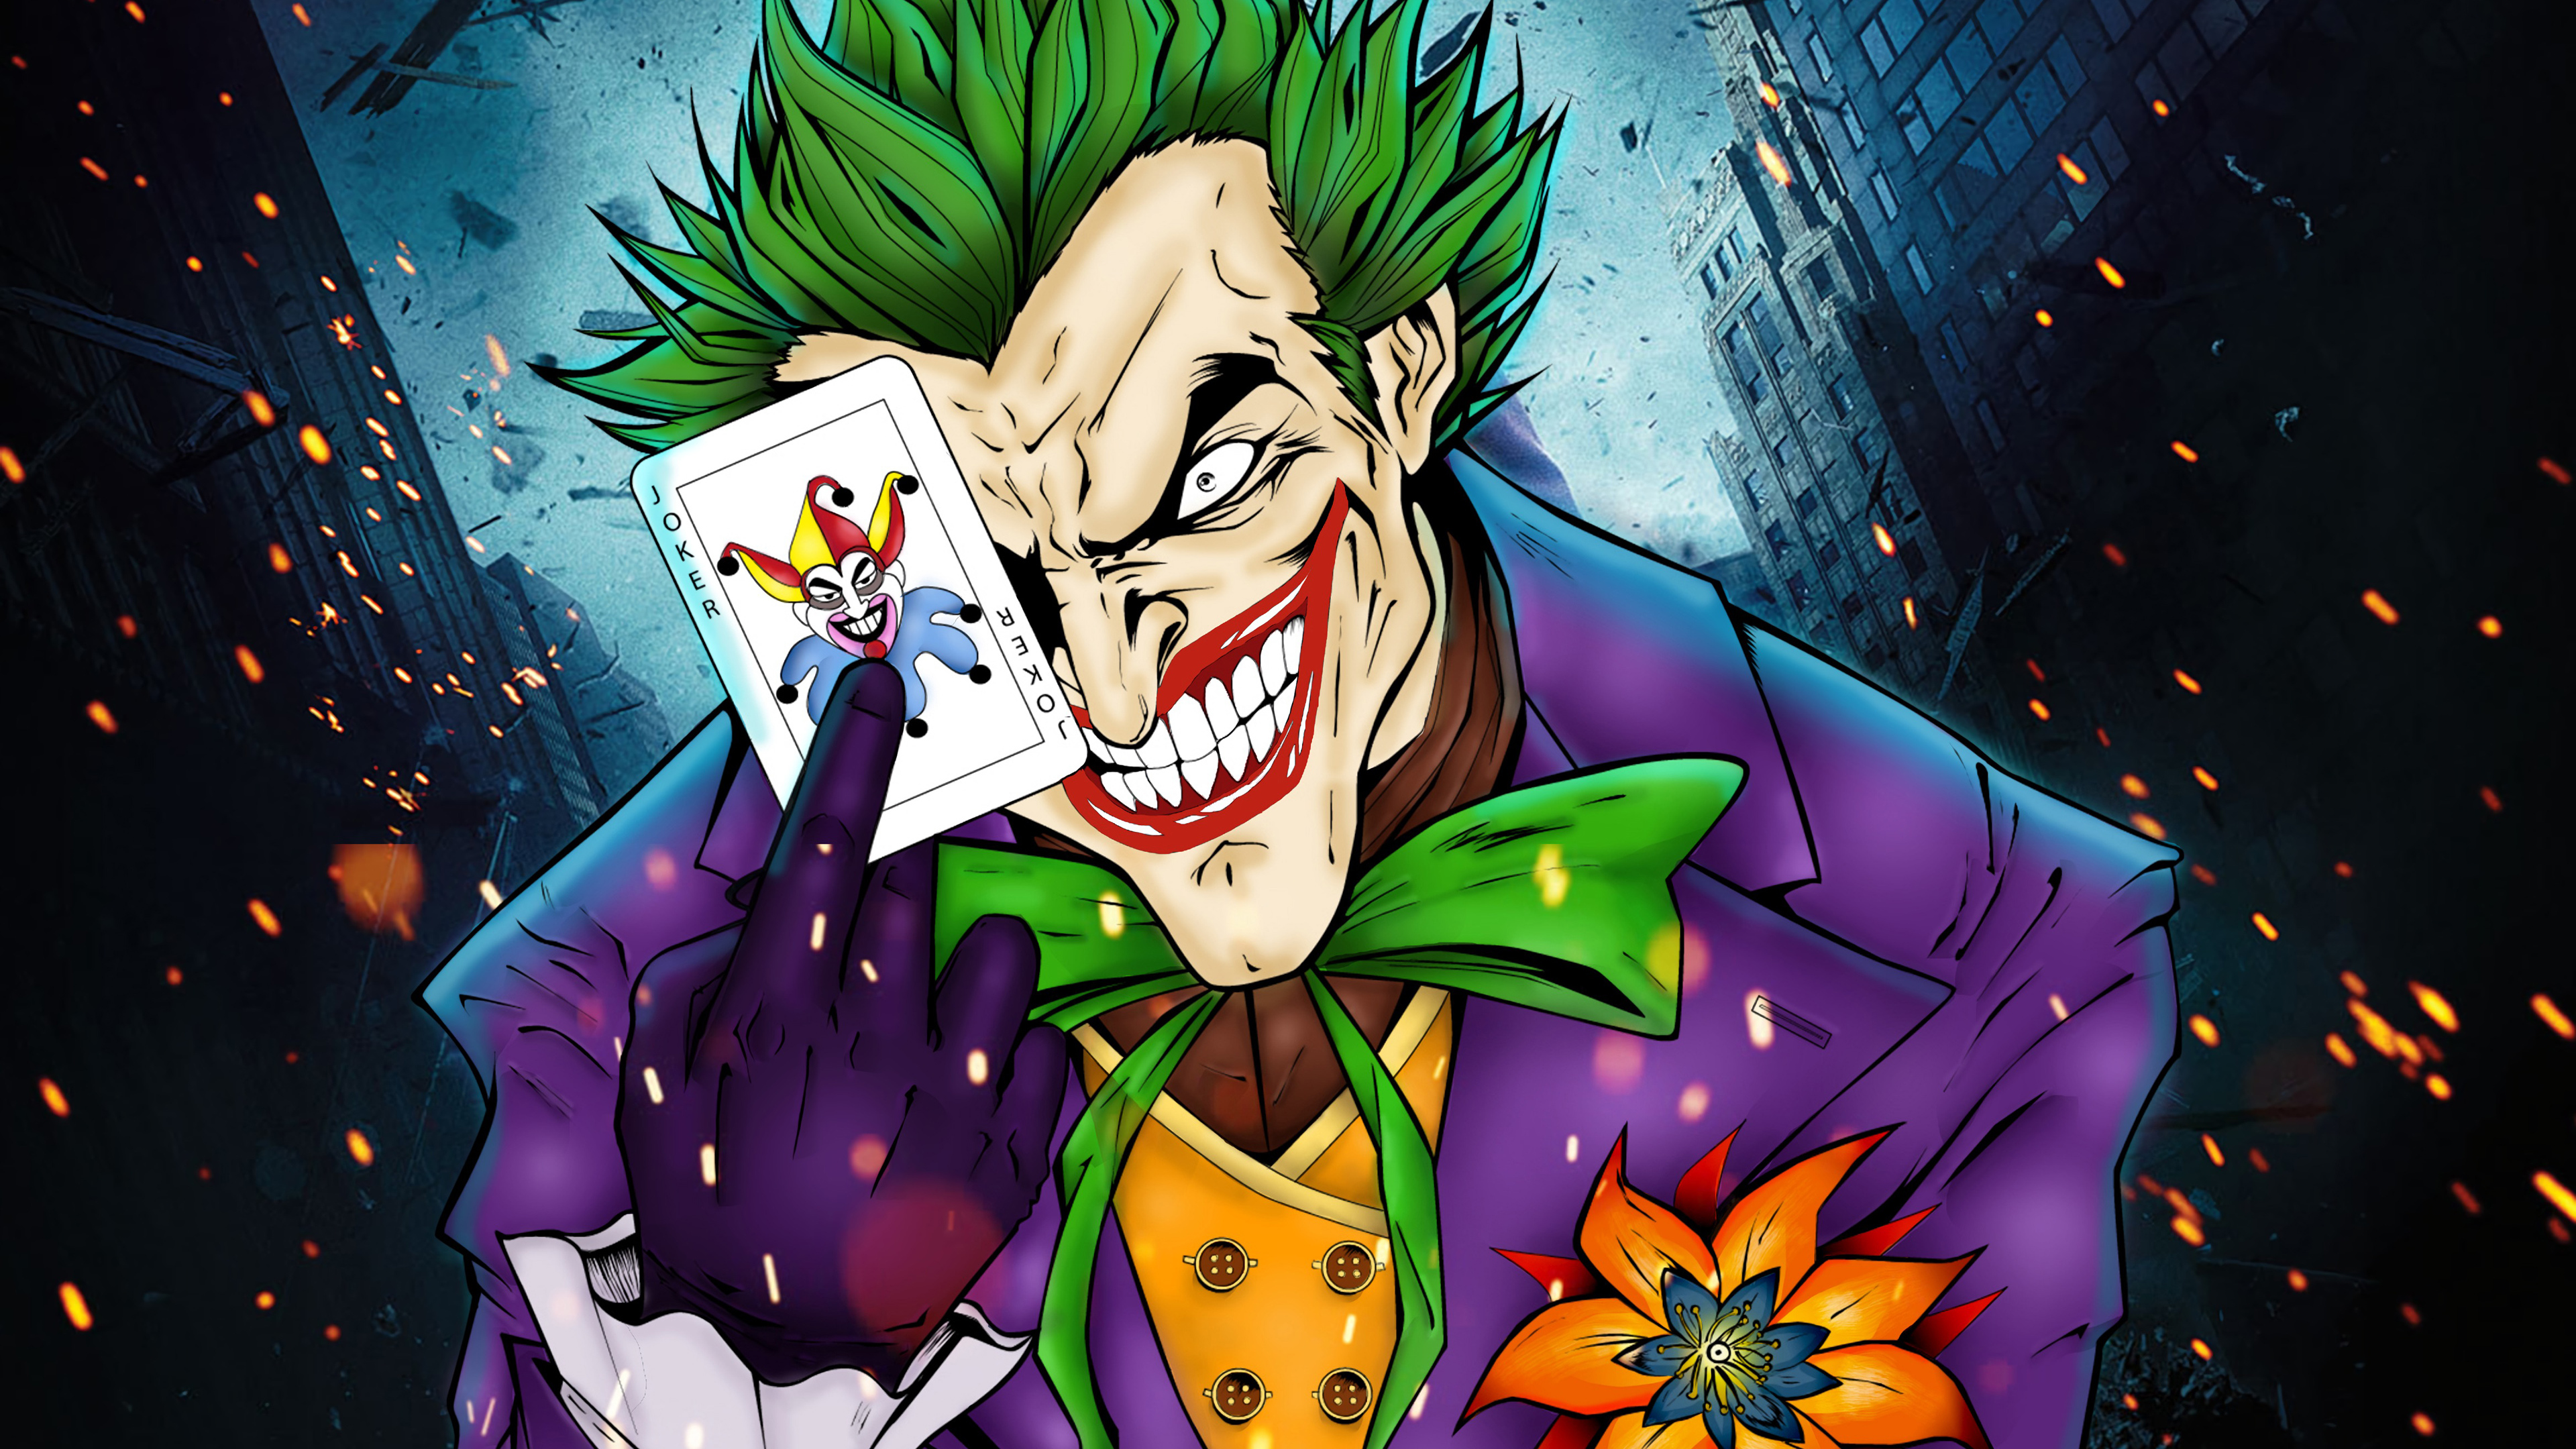 Joker Art Background High Quality Image HD Wallpapers 3840x2160